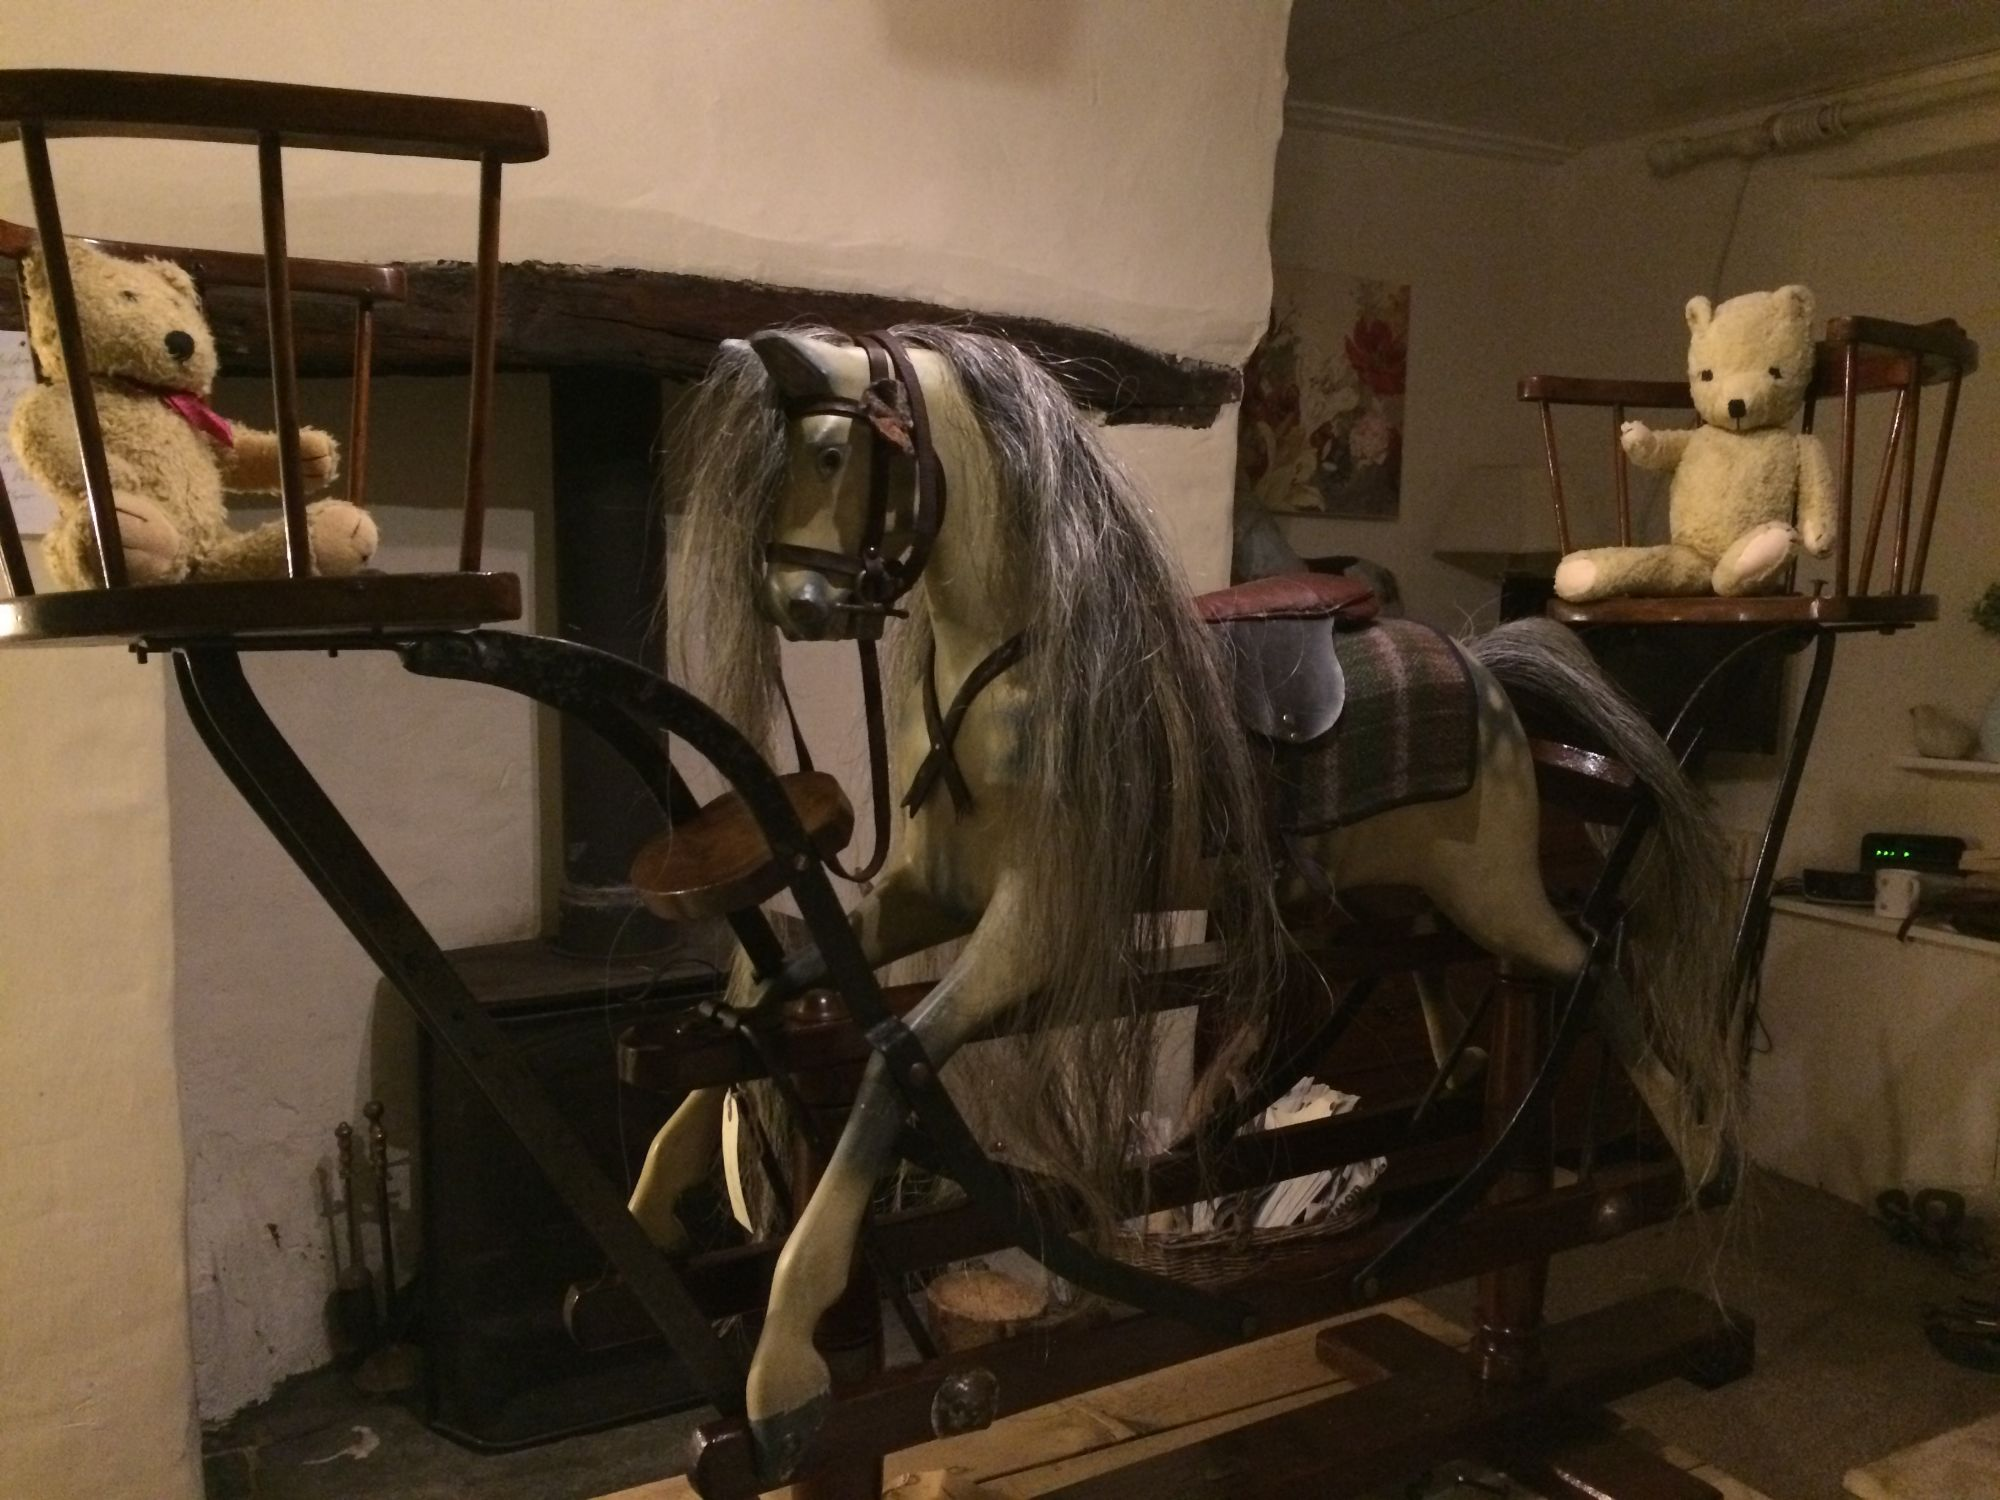 Sell a Rocking Horse or Hire a Rocking Horse, Contact Us